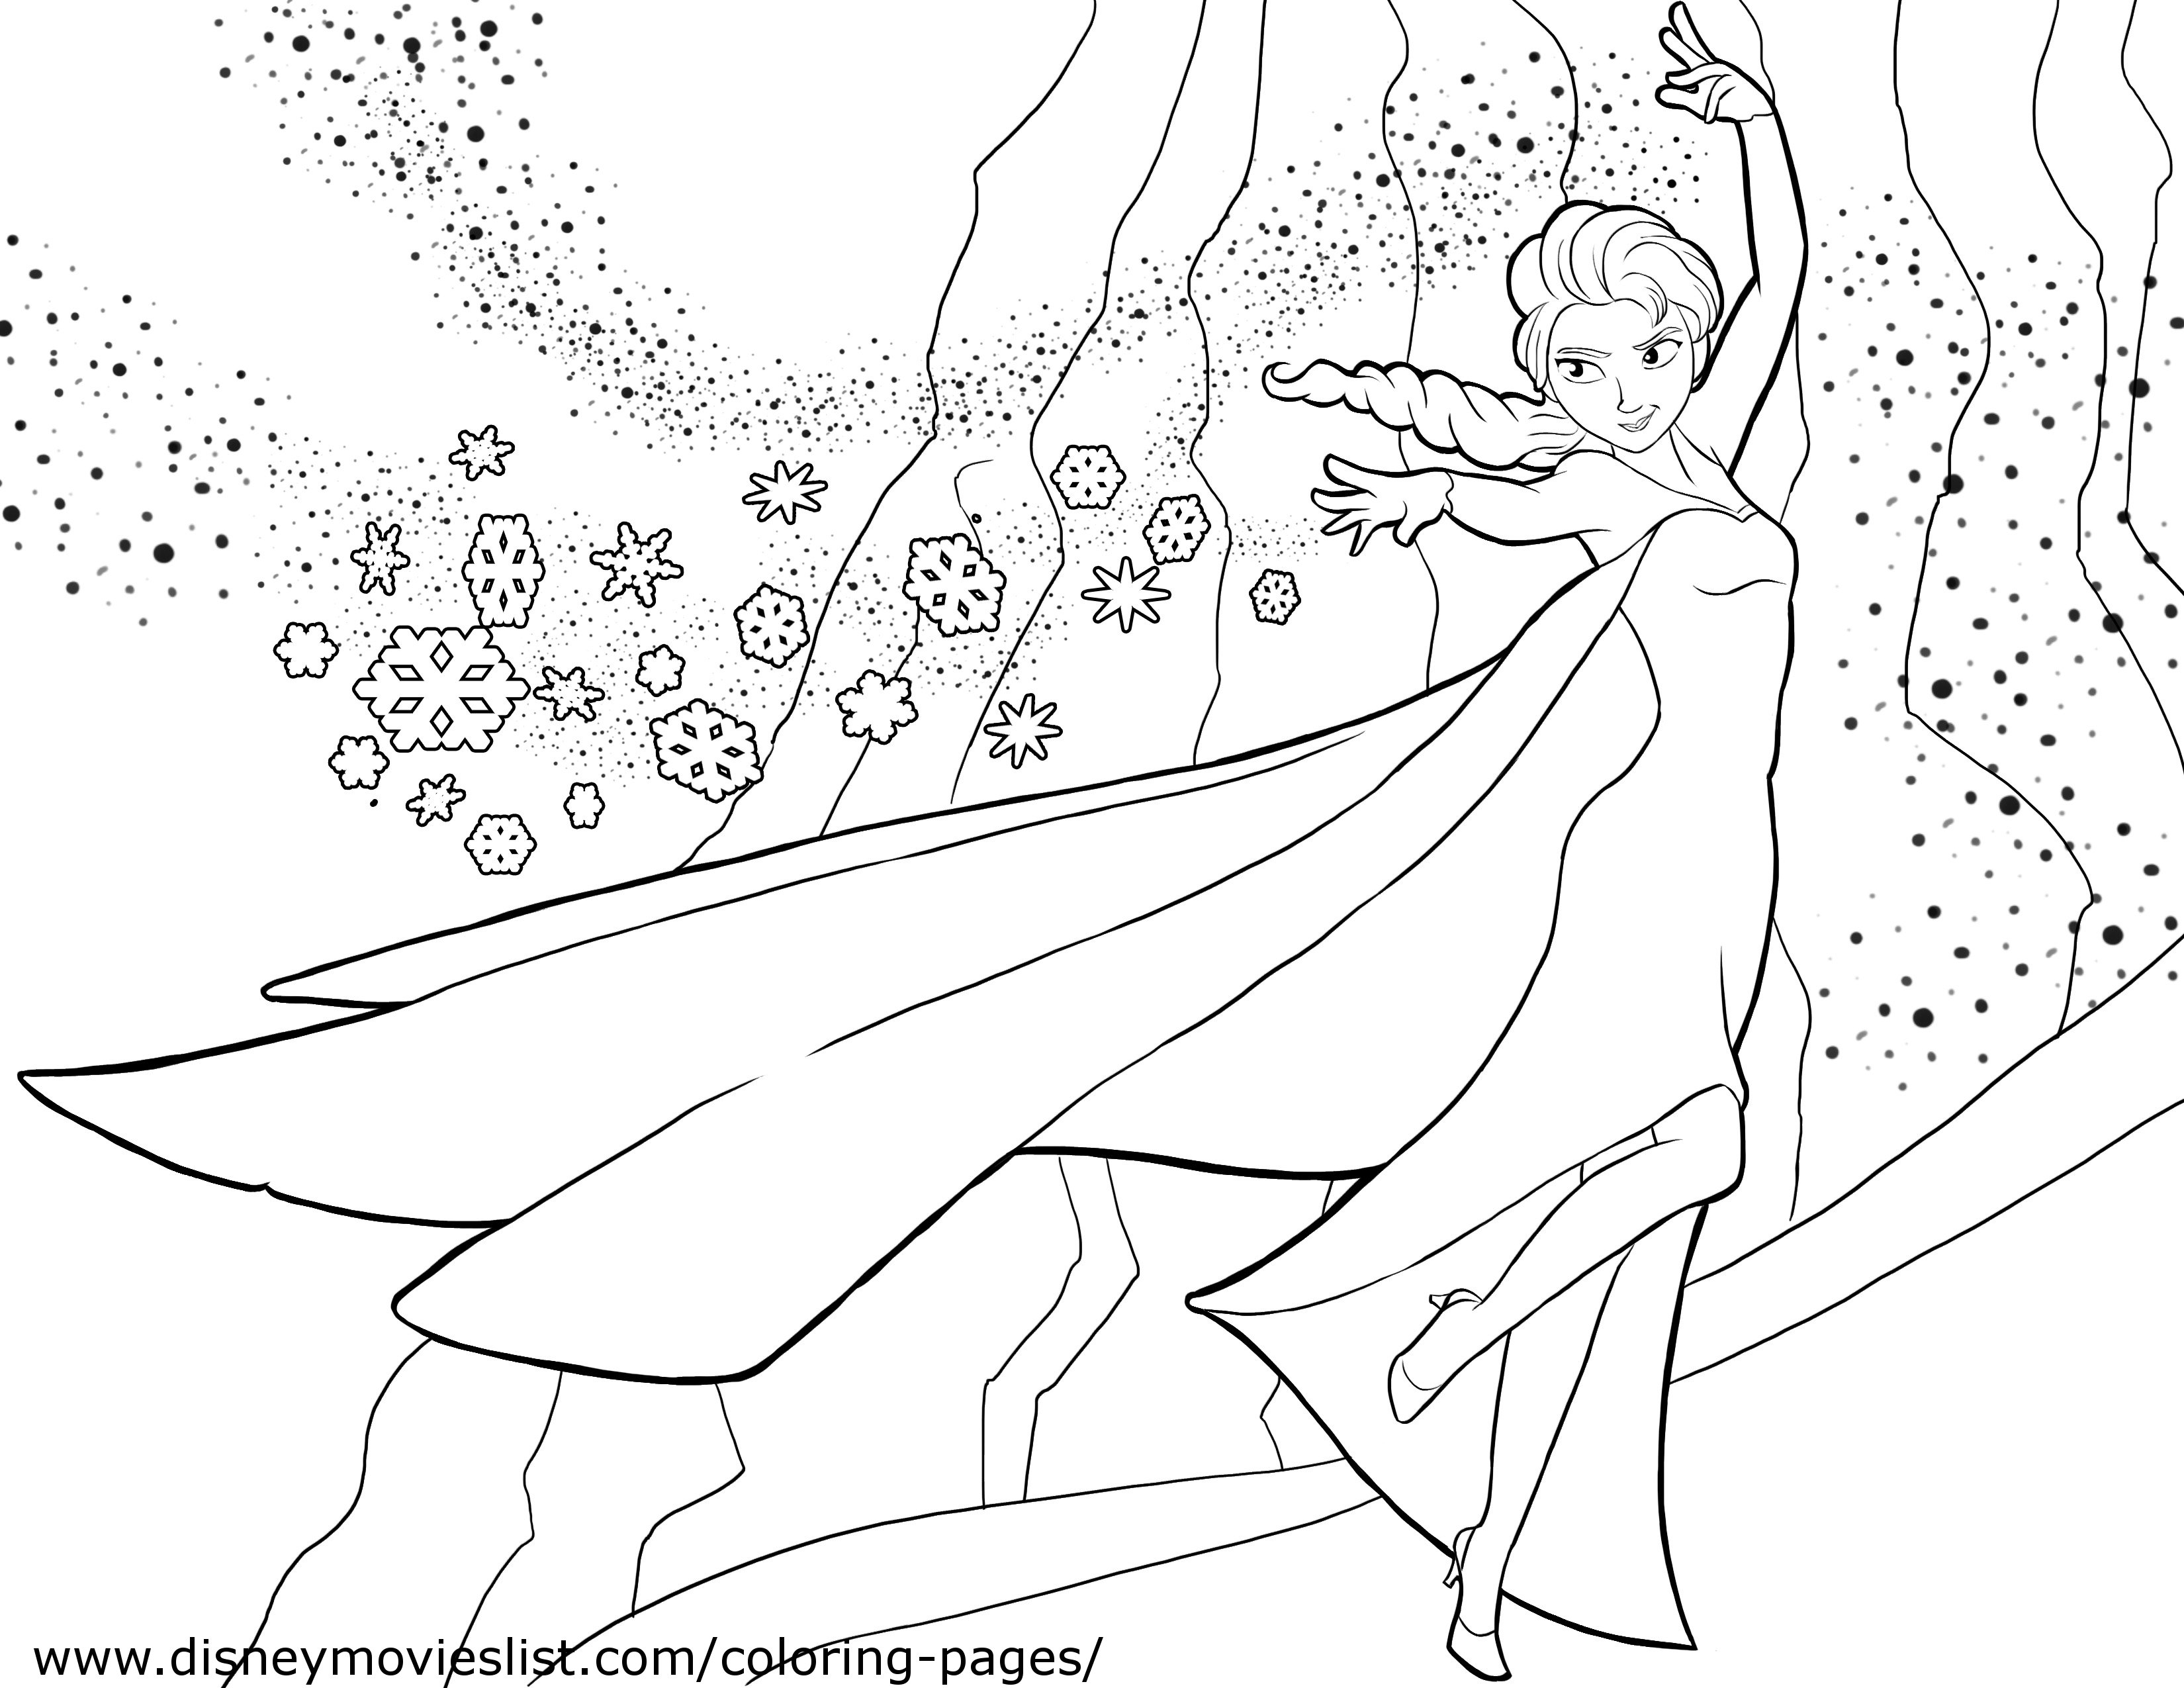 how to draw princess elsa from frozen step by step